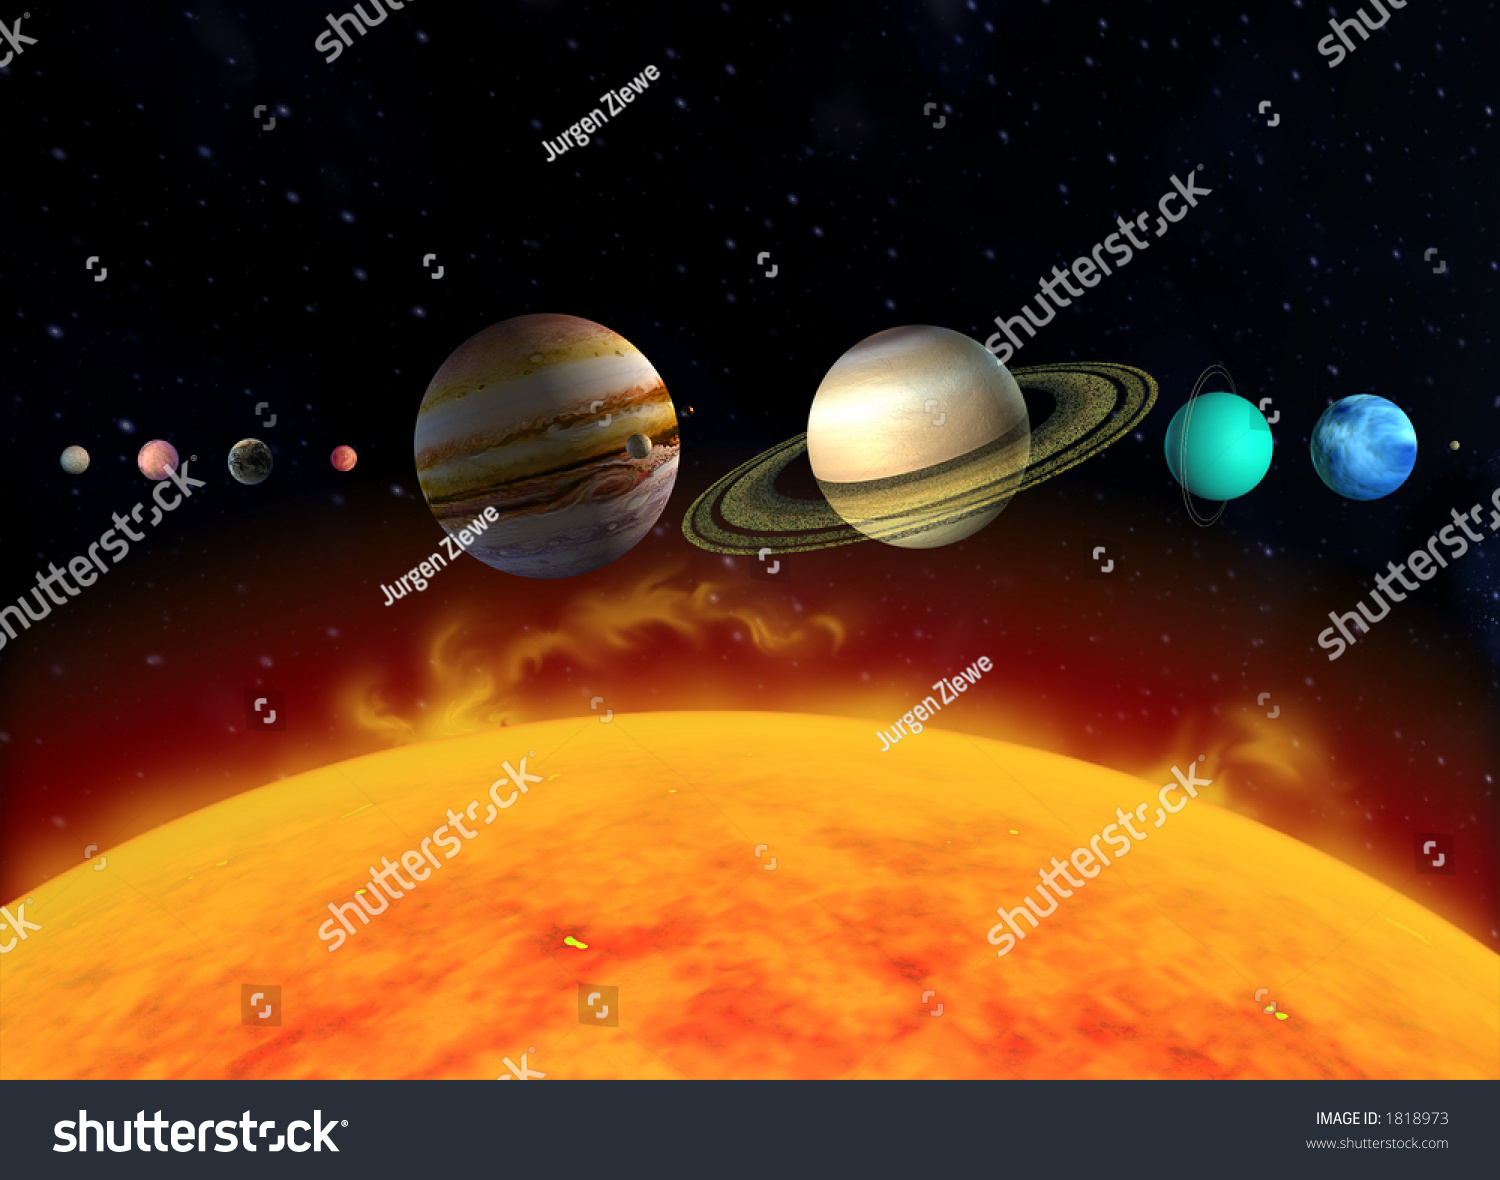 Delighted Bulldogsecurity.com Wiring Tiny Gibson 3 Way Switch Regular 5 Way Switch Diagram 1 Humbucker 1 Volume Youthful Bulldog Vehicle BlackHow To Install Remote Start Alarm Diagram Illustration Planets Solar System Relation Stock ..